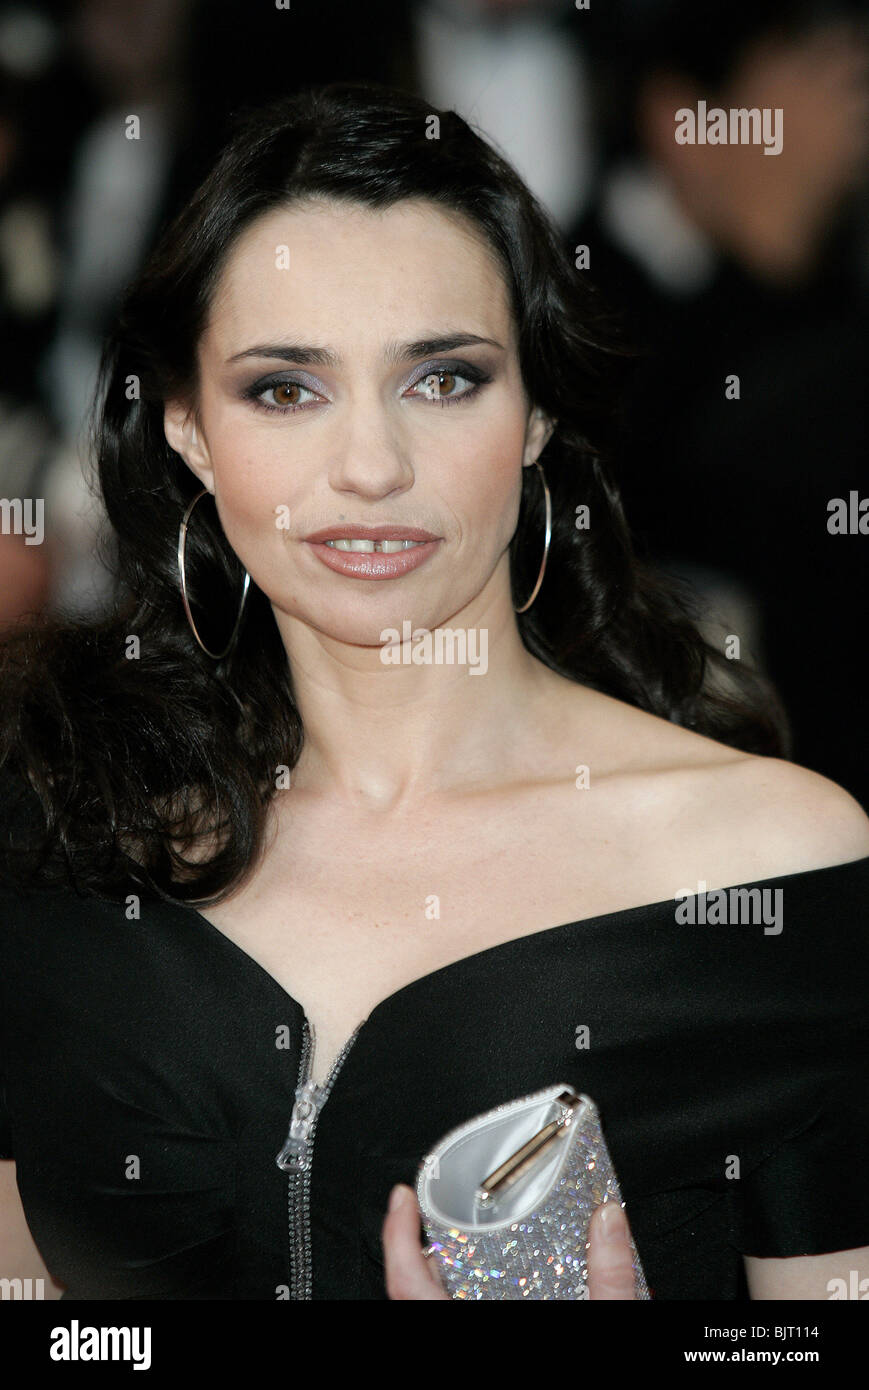 Celebrity Beatrice Dalle nude (13 foto and video), Pussy, Bikini, Selfie, butt 2006